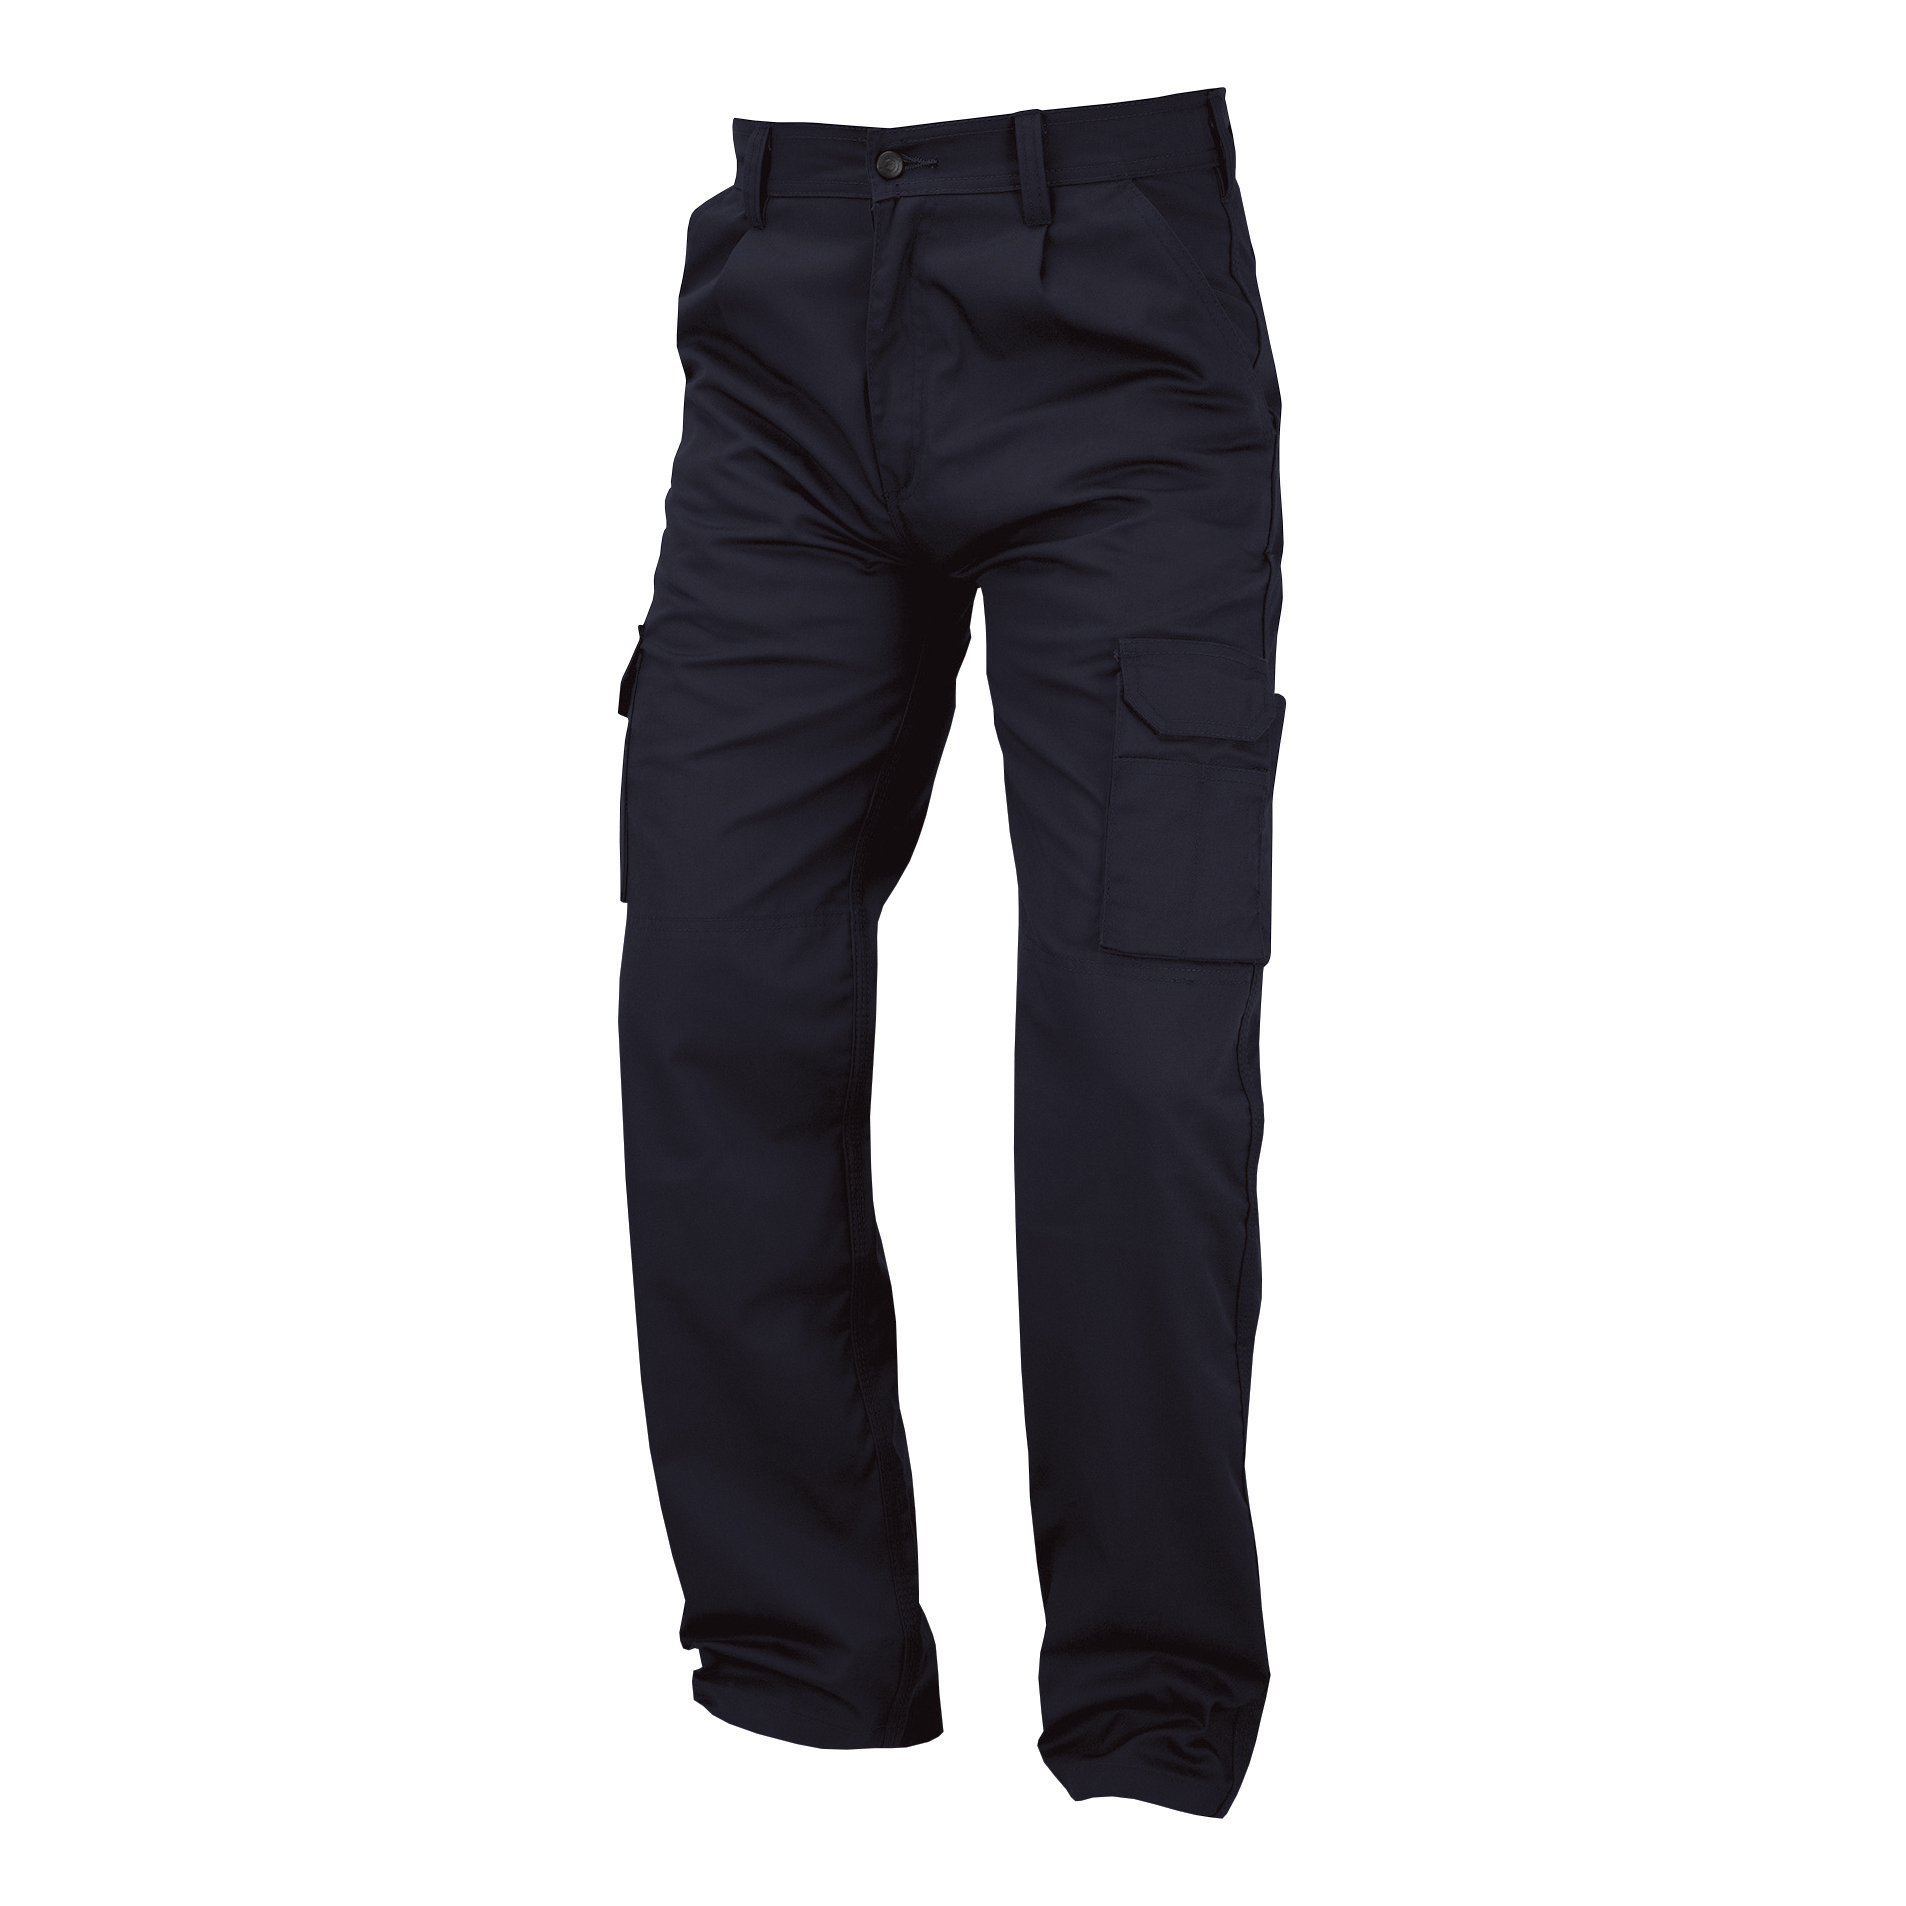 Kneepad Combat Trouser Multi-functional Waist 42in Leg 29in Navy Approx 3 Day Leadtime